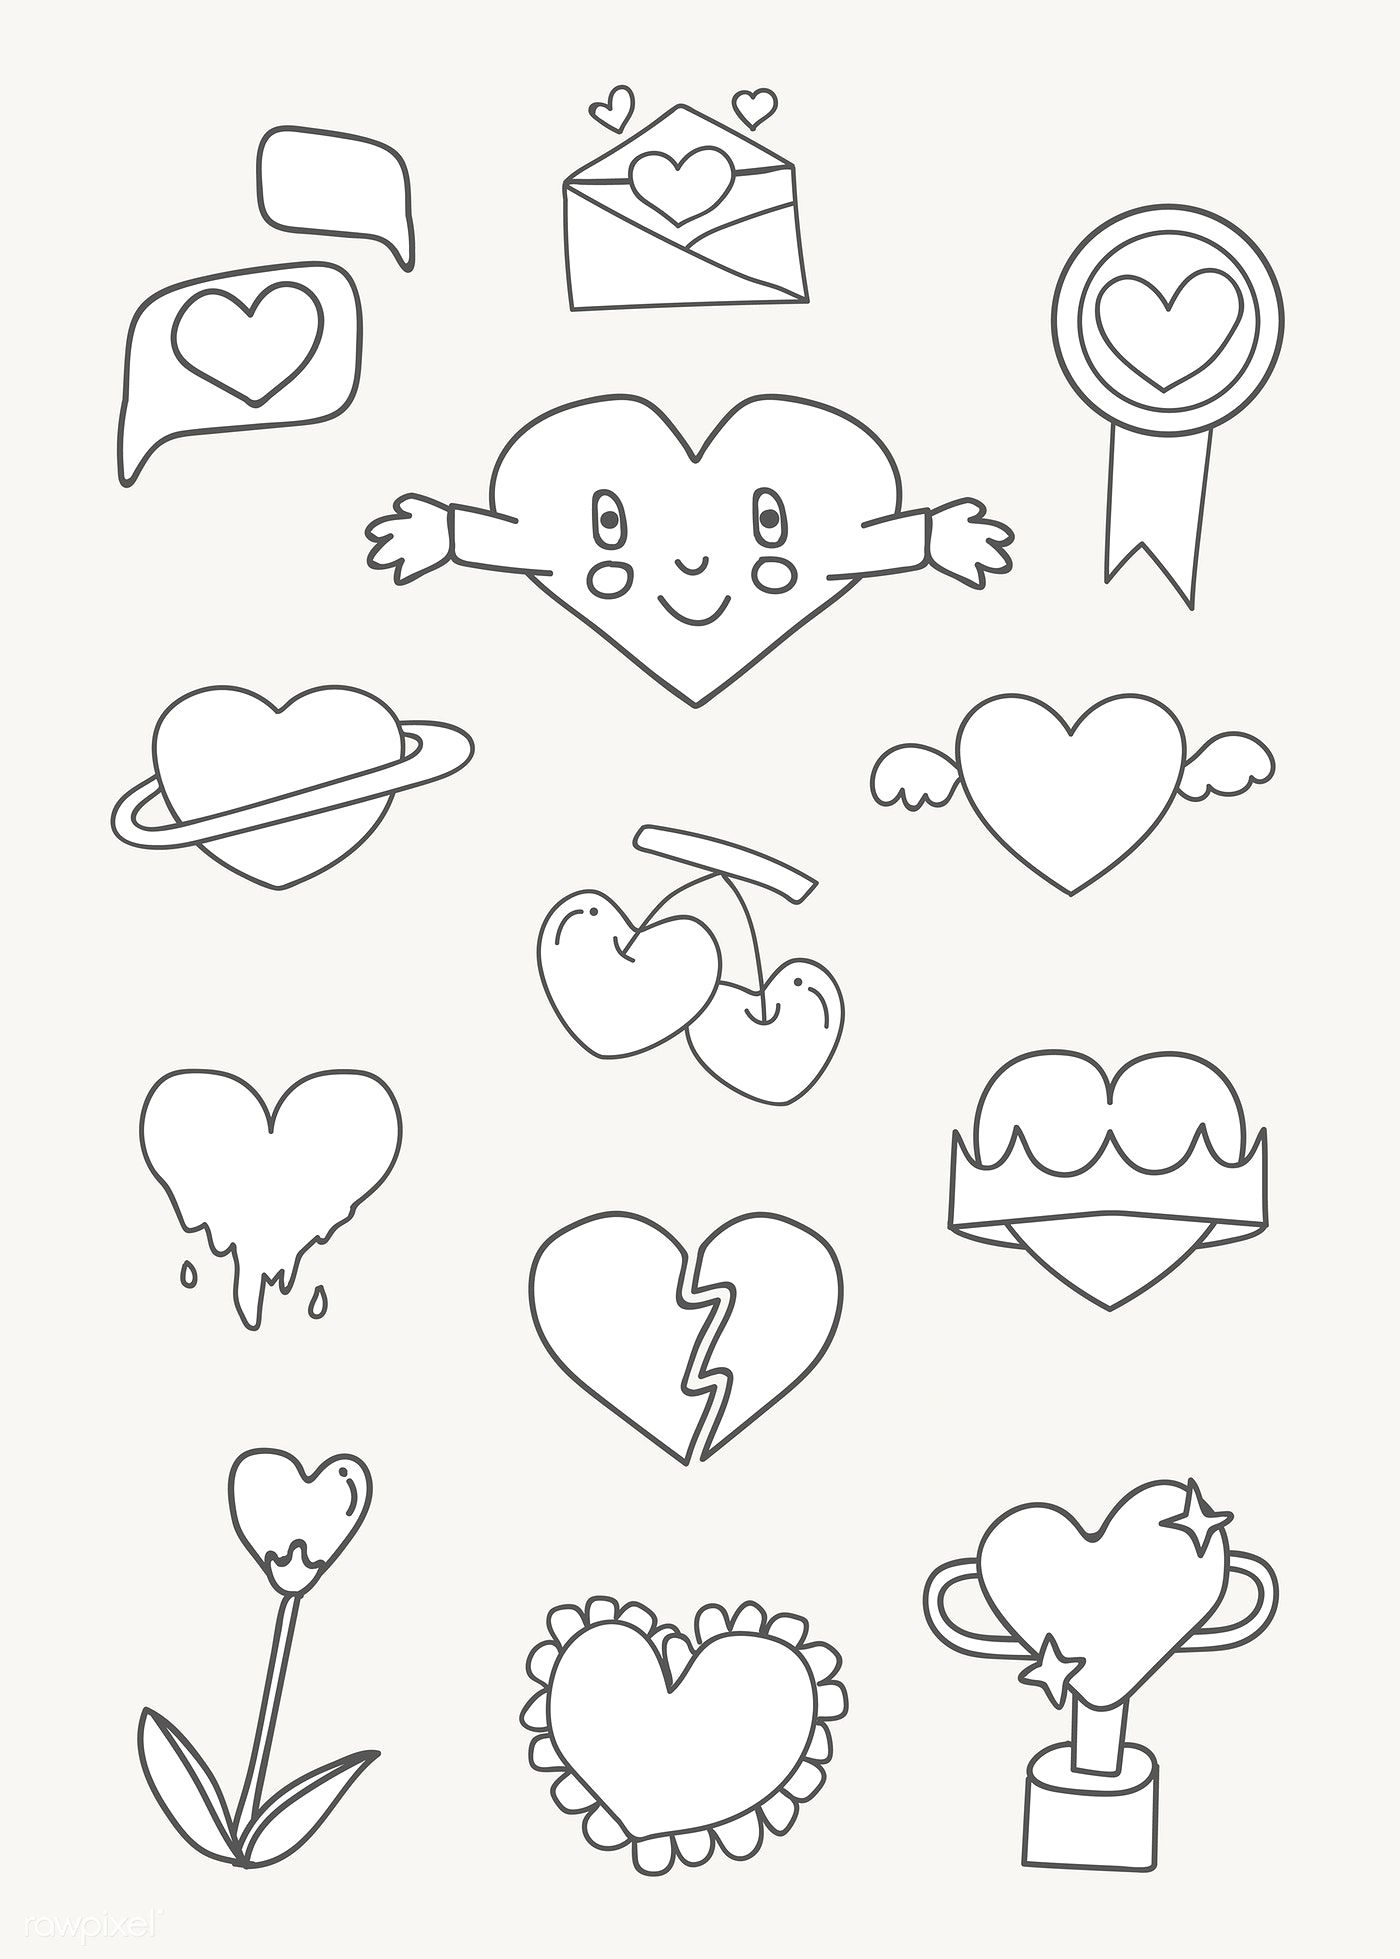 White heart design collection vectors free image by